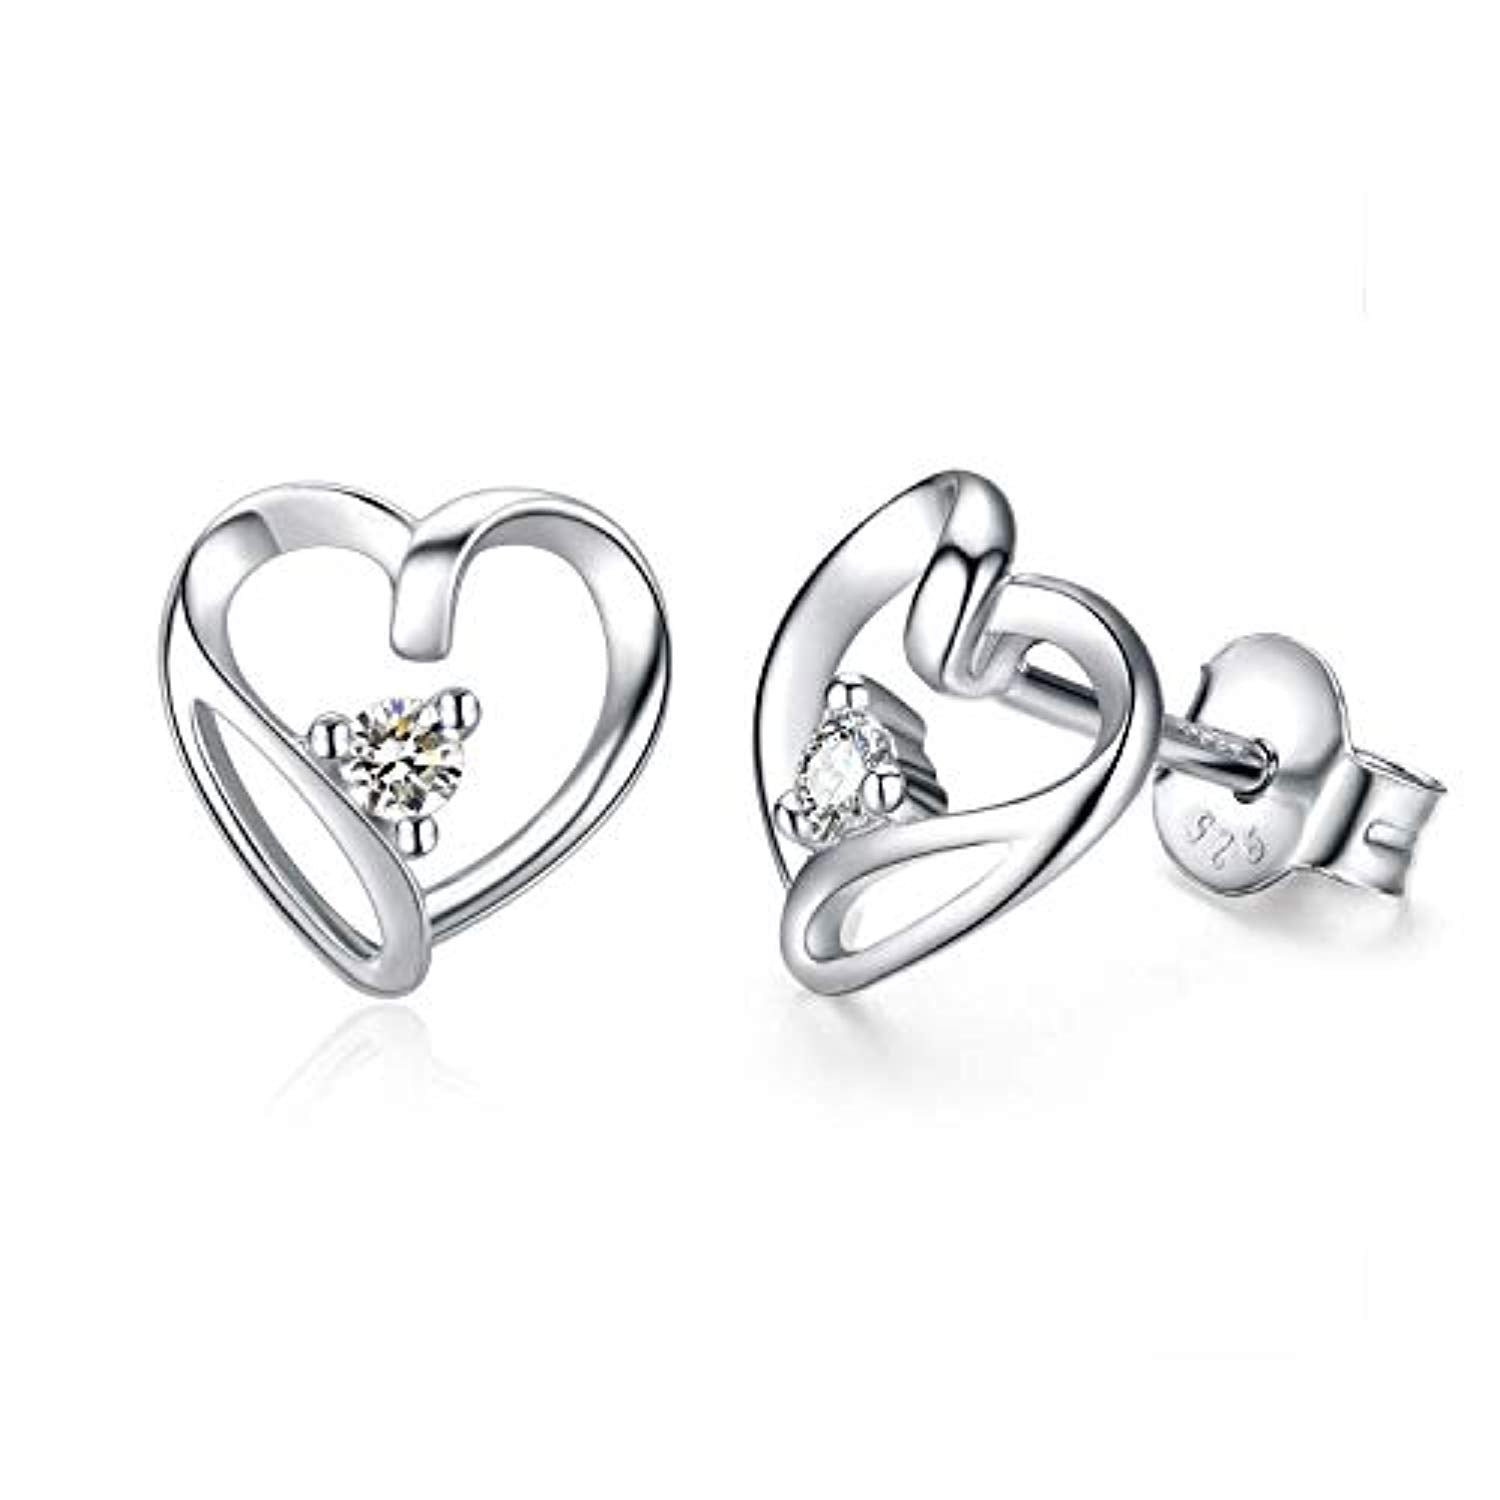 925 Sterling Silver Heart Stud Earrings Hypoallergenic Stud Earrings for Women